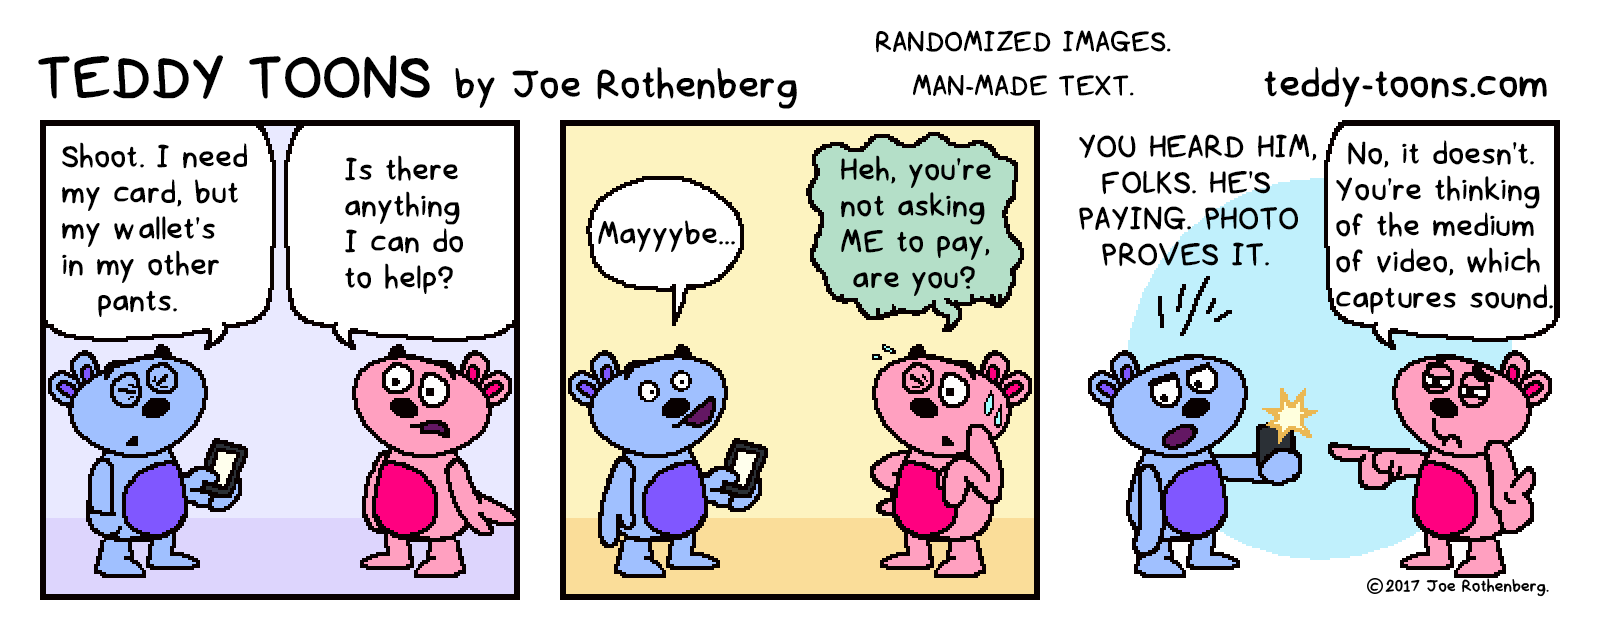 03-13-17.png